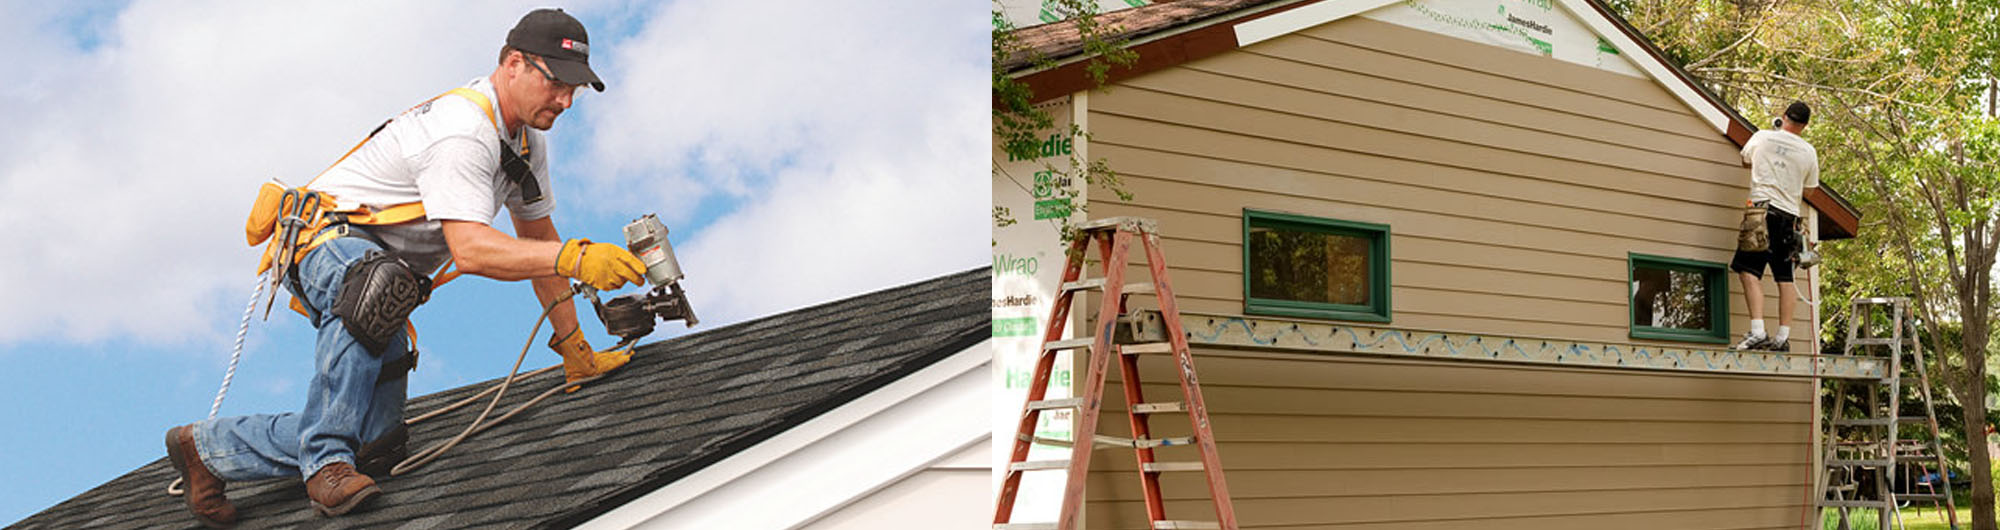 East Coast Construction and Remodeling Inc. - Siding and Roofing